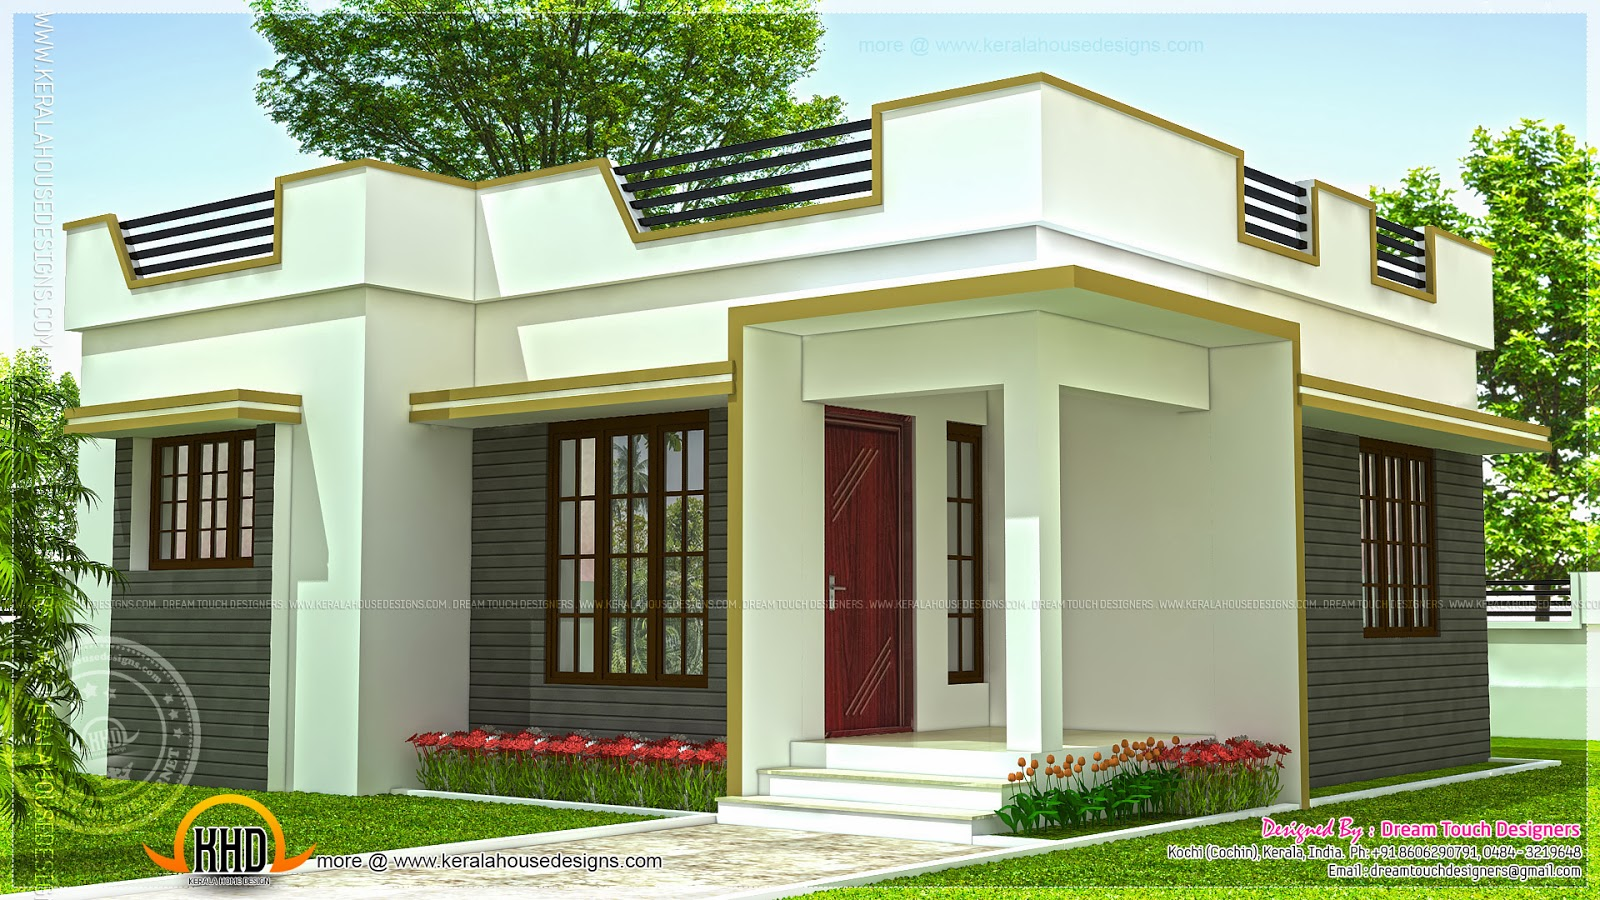 35 small and simple but beautiful house with roof deck - Small Designs 2